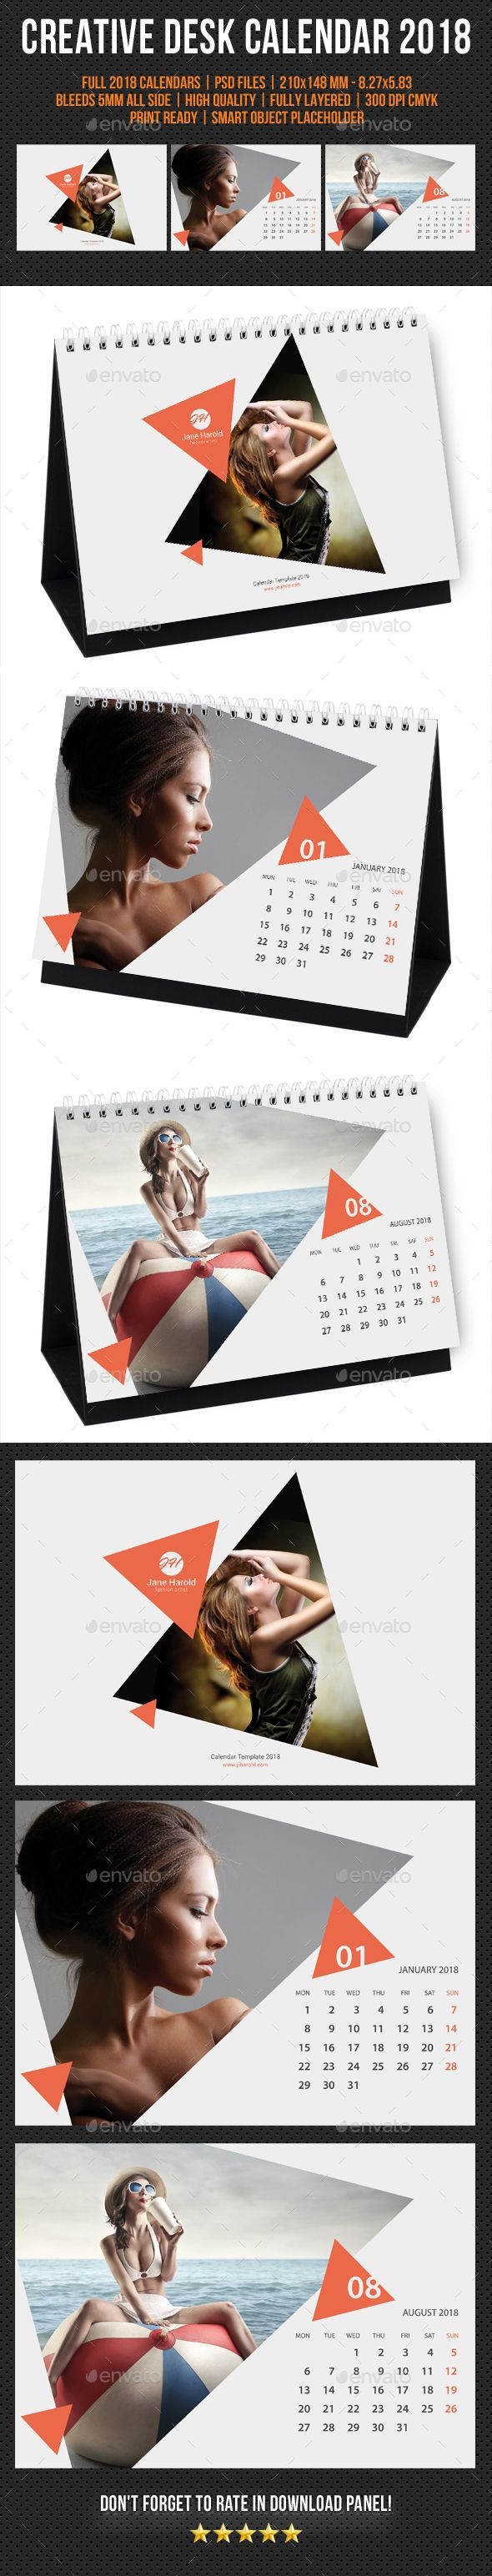 Creative Desk Calendar 2018 Template Psd Pinterest